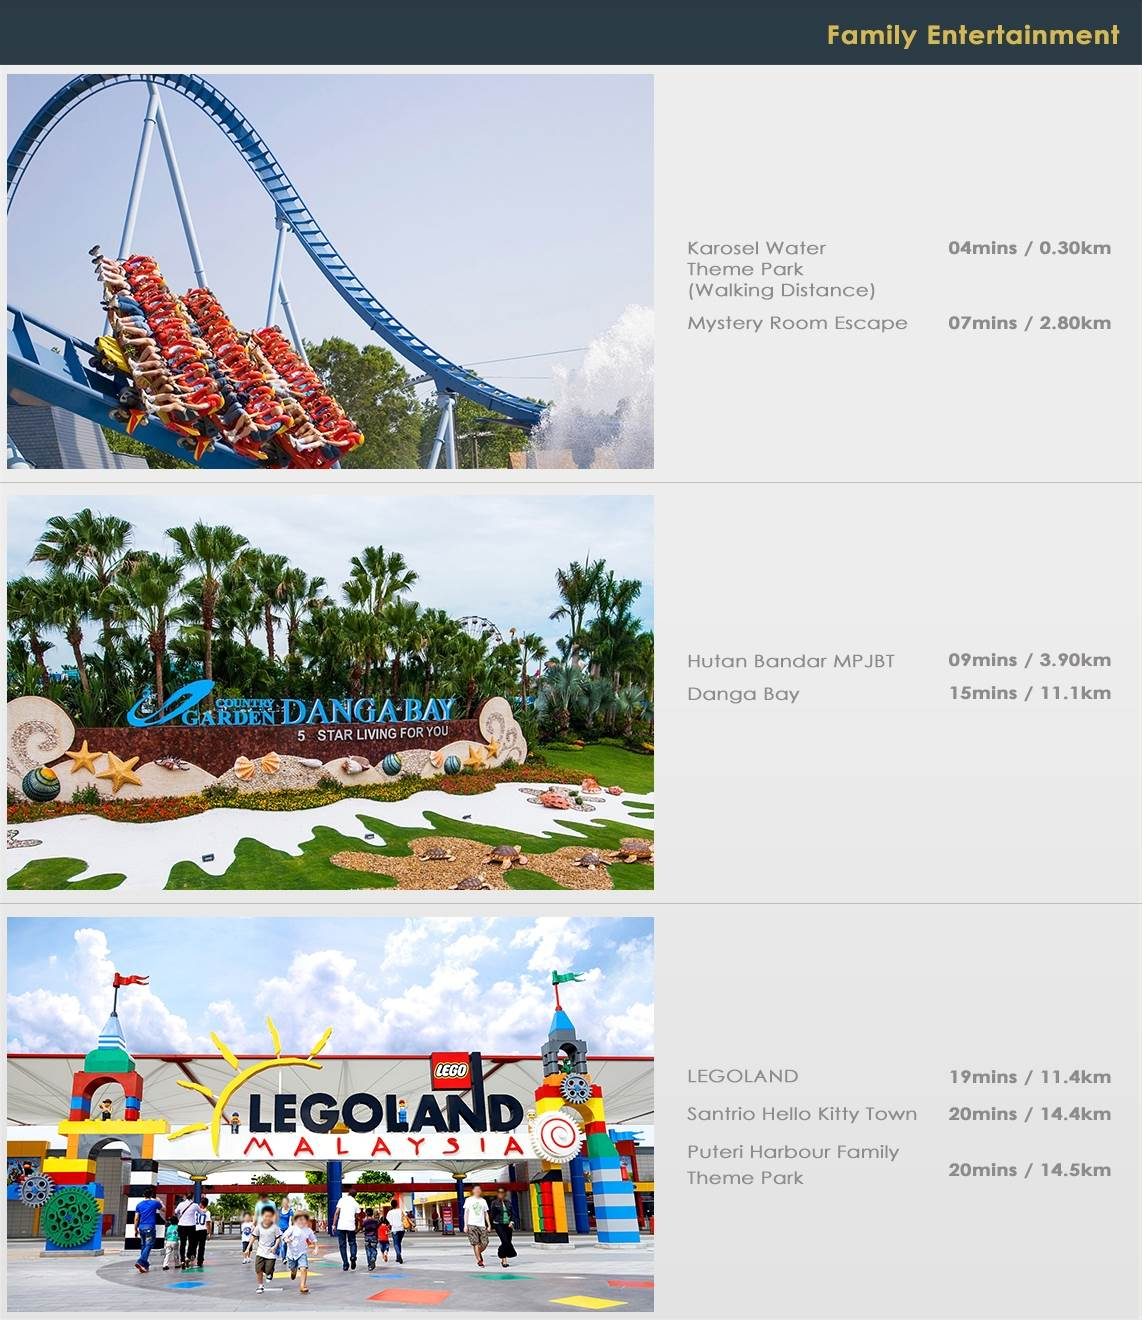 Nearby attractions page design_V8 family entertainment-crop